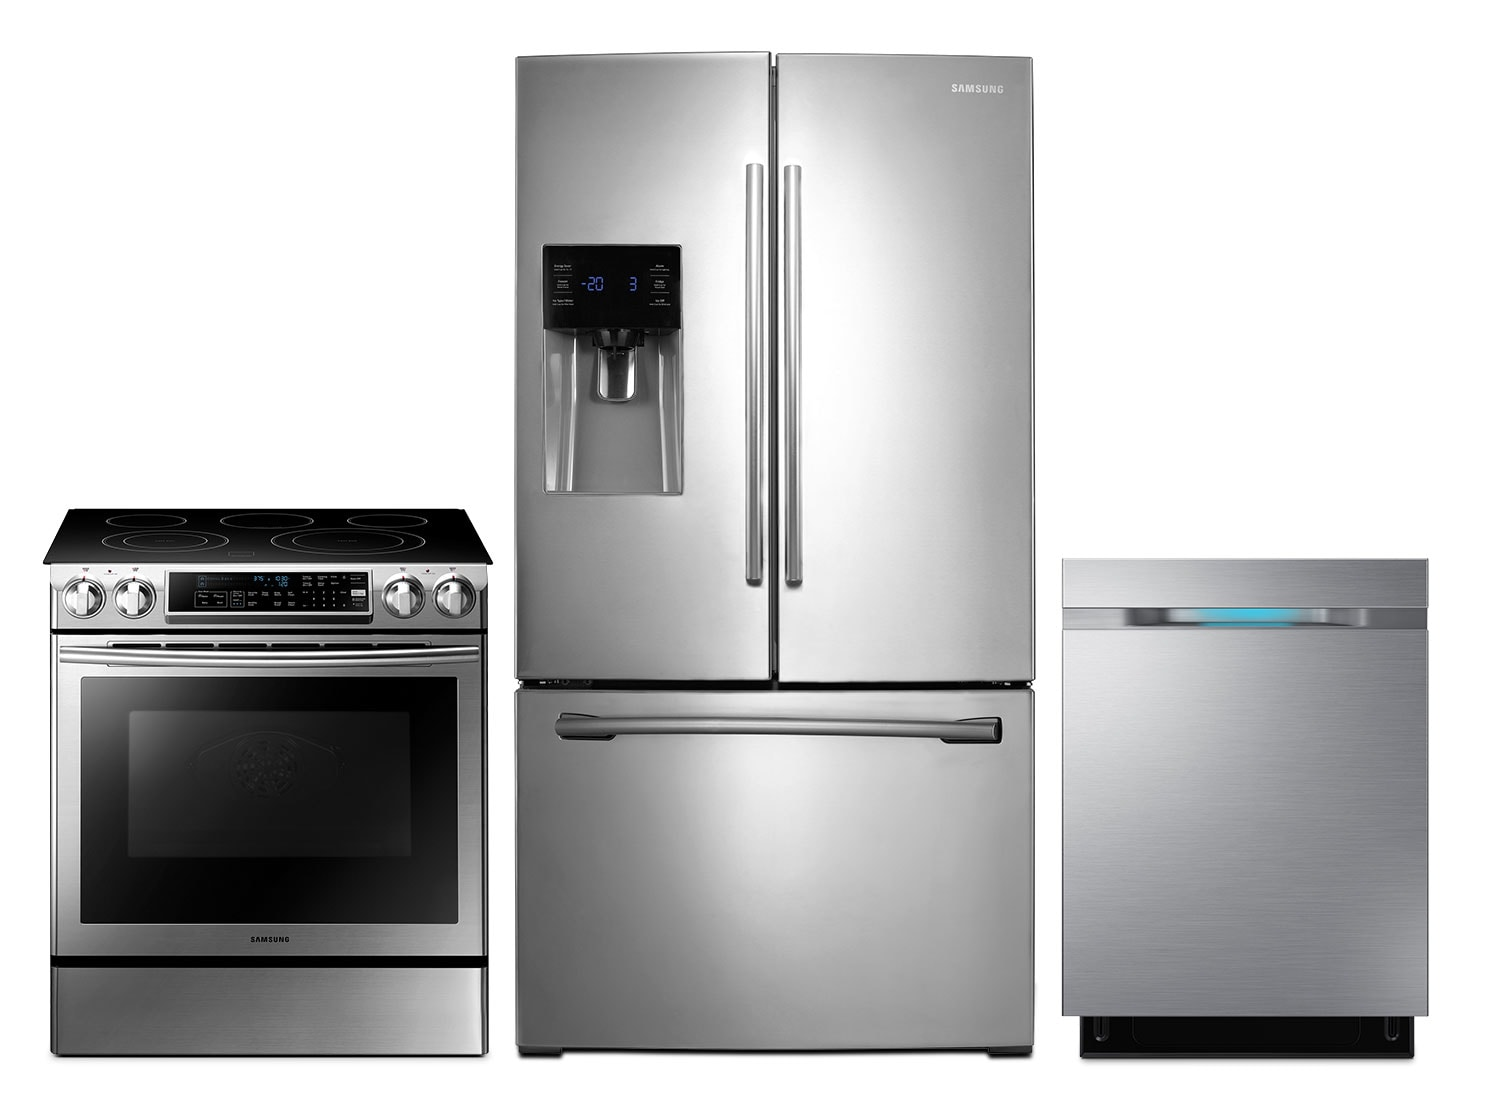 "Samsung 26 Cu. Ft. Refrigerator, 5.8 Cu. Ft. Electric Range and 24"" Built-In Dishwasher"